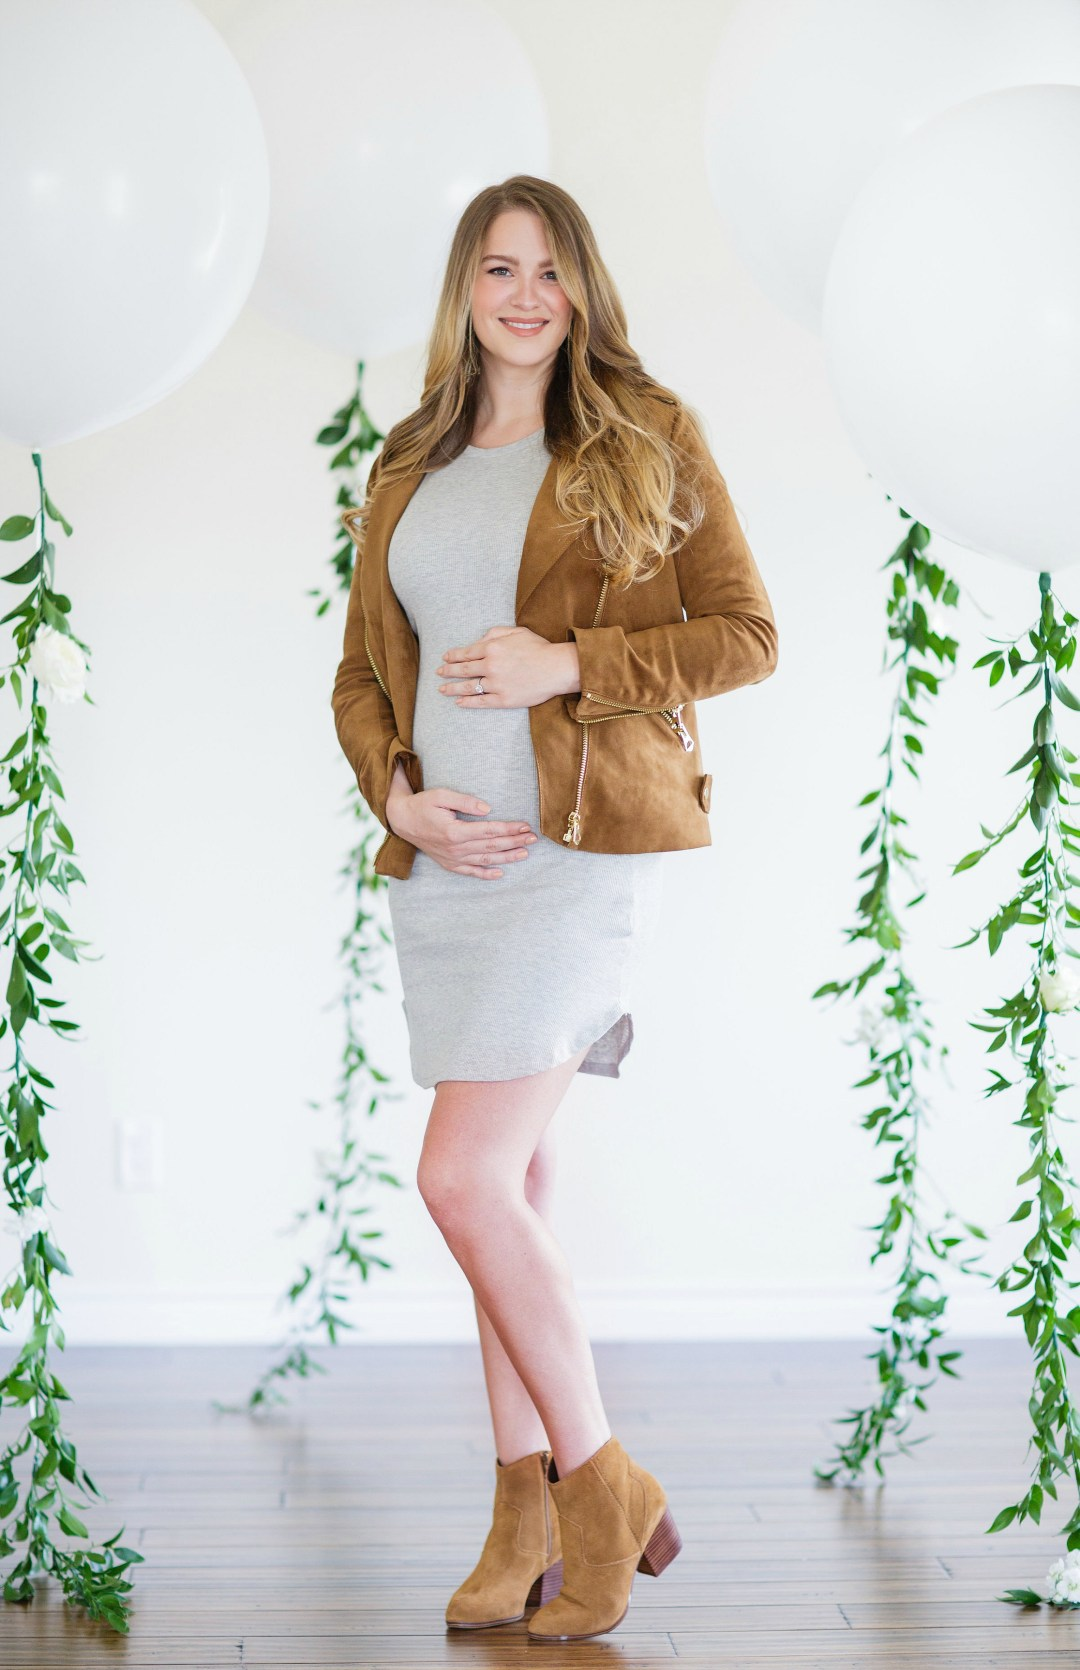 pregnancy-announcement-fashion-lifestyle-blogger-canadian-maternity-rose-city-style-guide-11